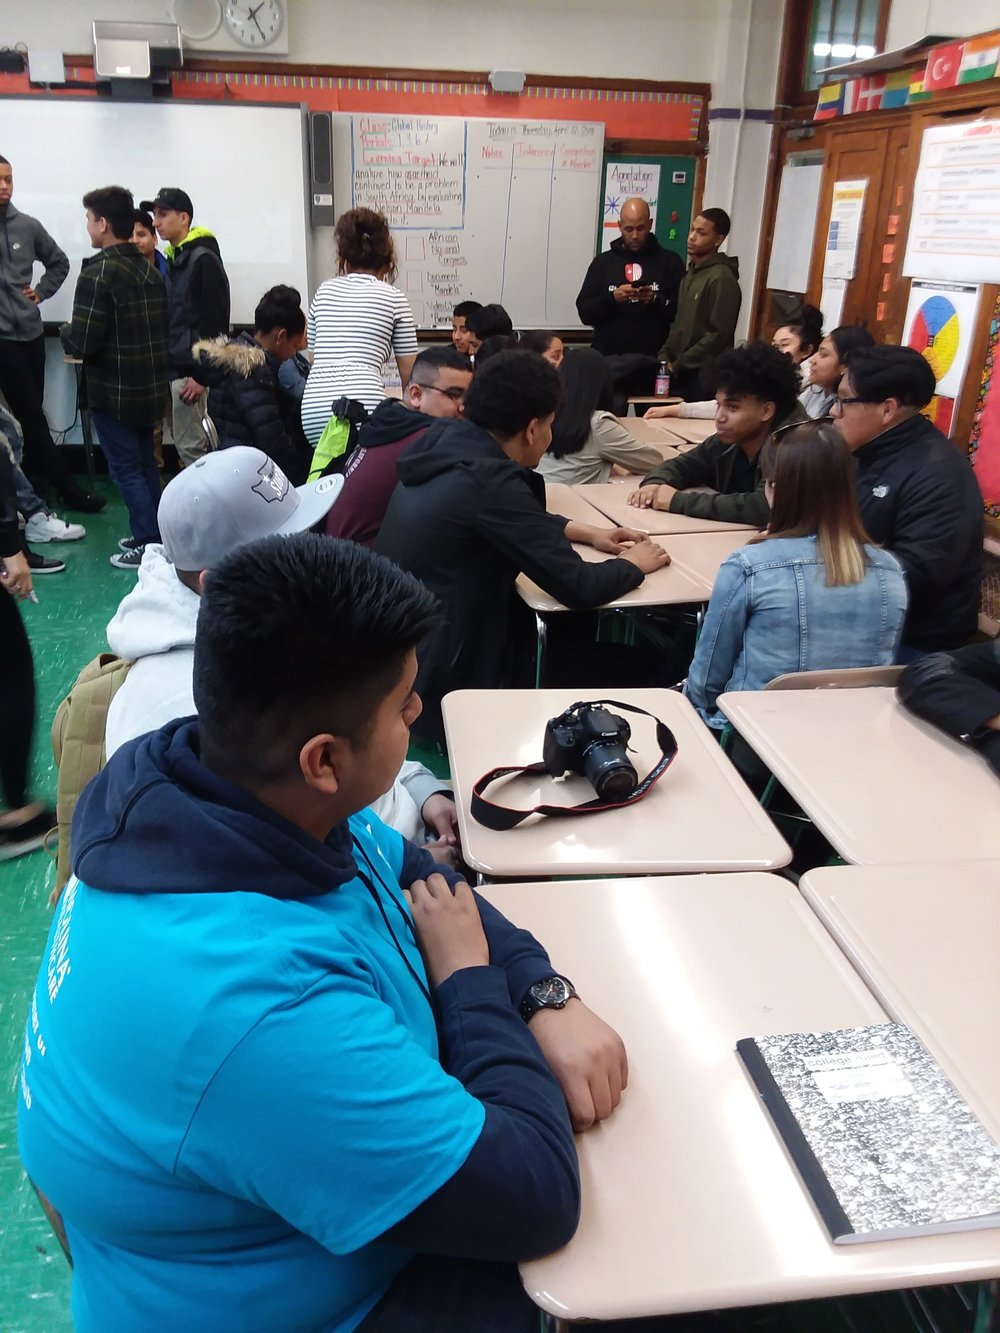 Students meeting and exchanging stories at Explorations Academy